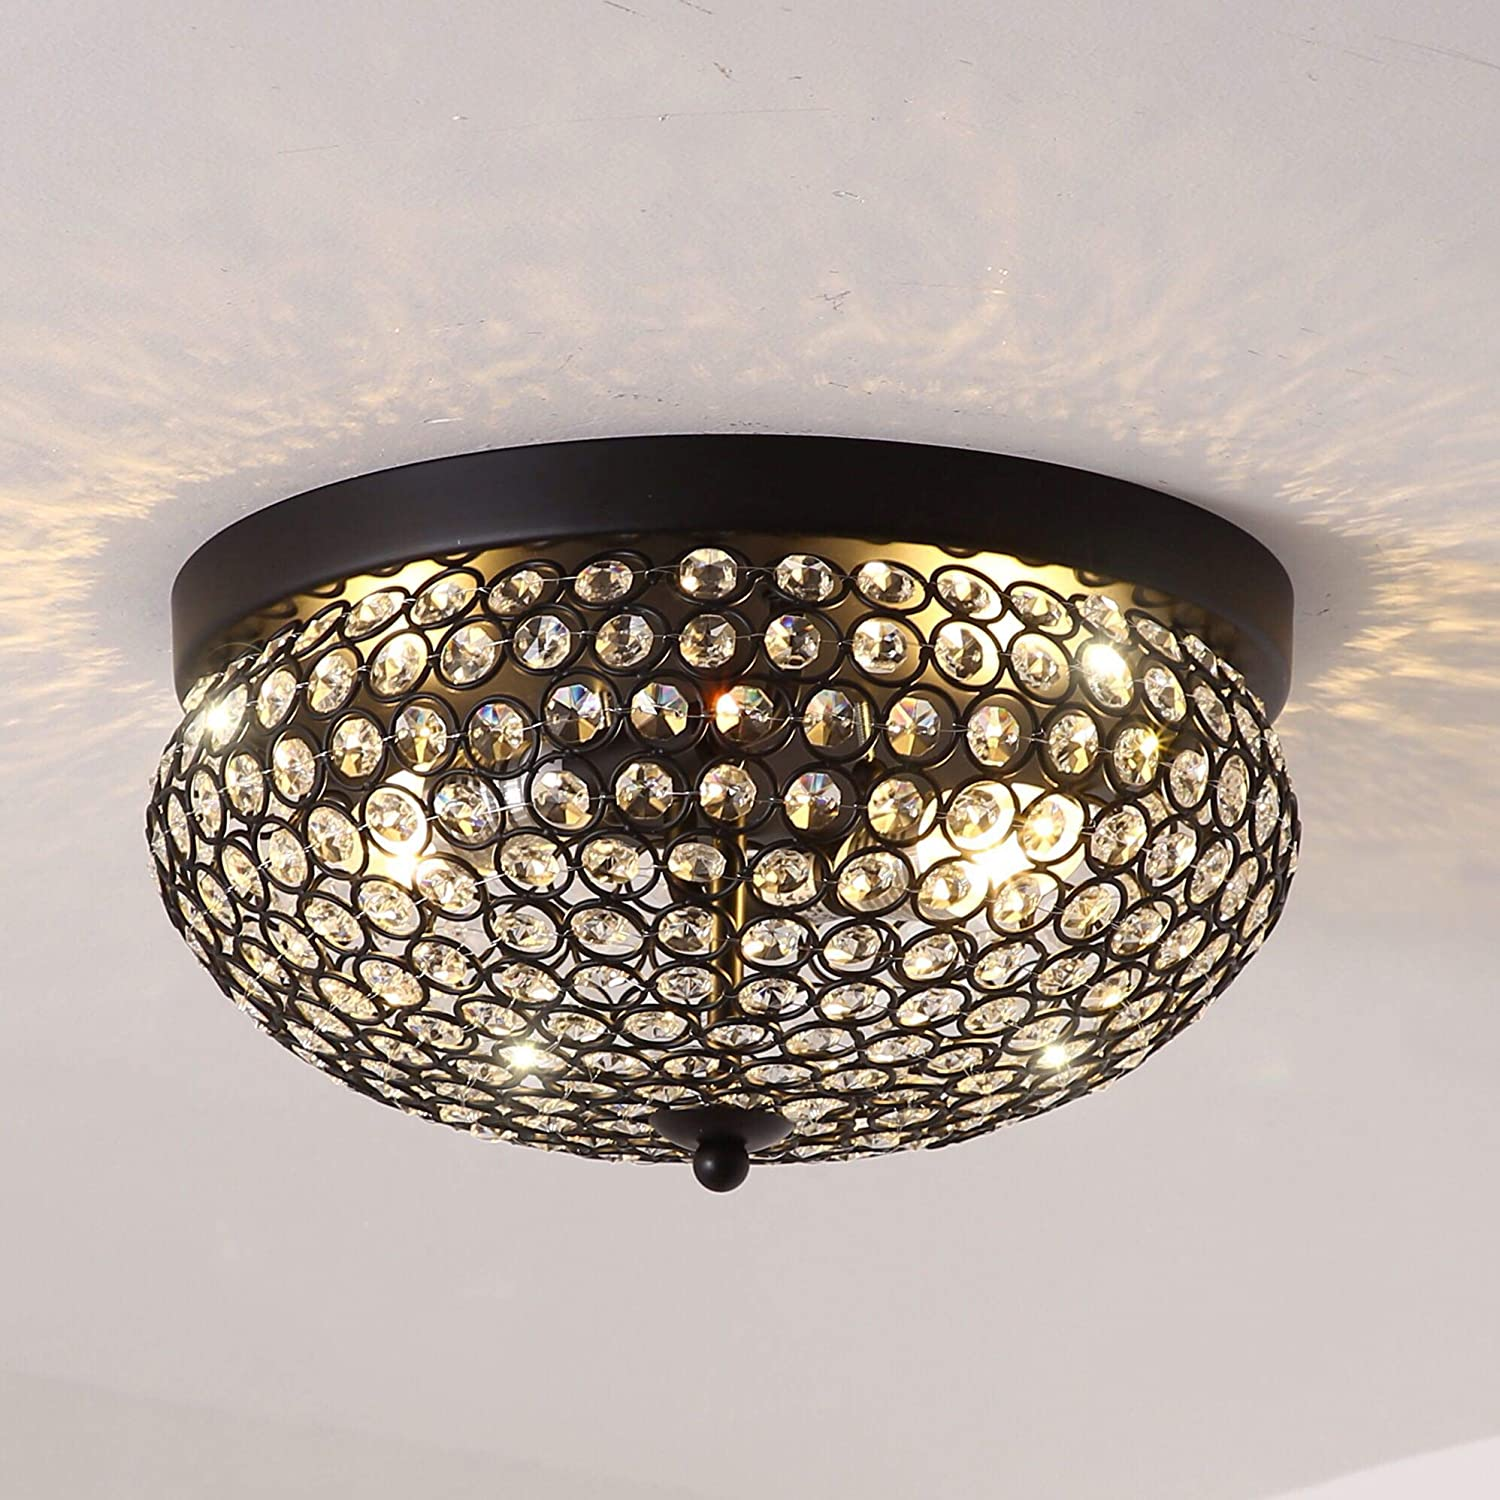 Tayanuc Black Crystal Flush Mount Ceiling Light with 2 Lights, Modern Crystal Chandelier Ceiling Fixtures for Hallway Dining Room Bedroom Kitchen with Sparkling Crystal Shade